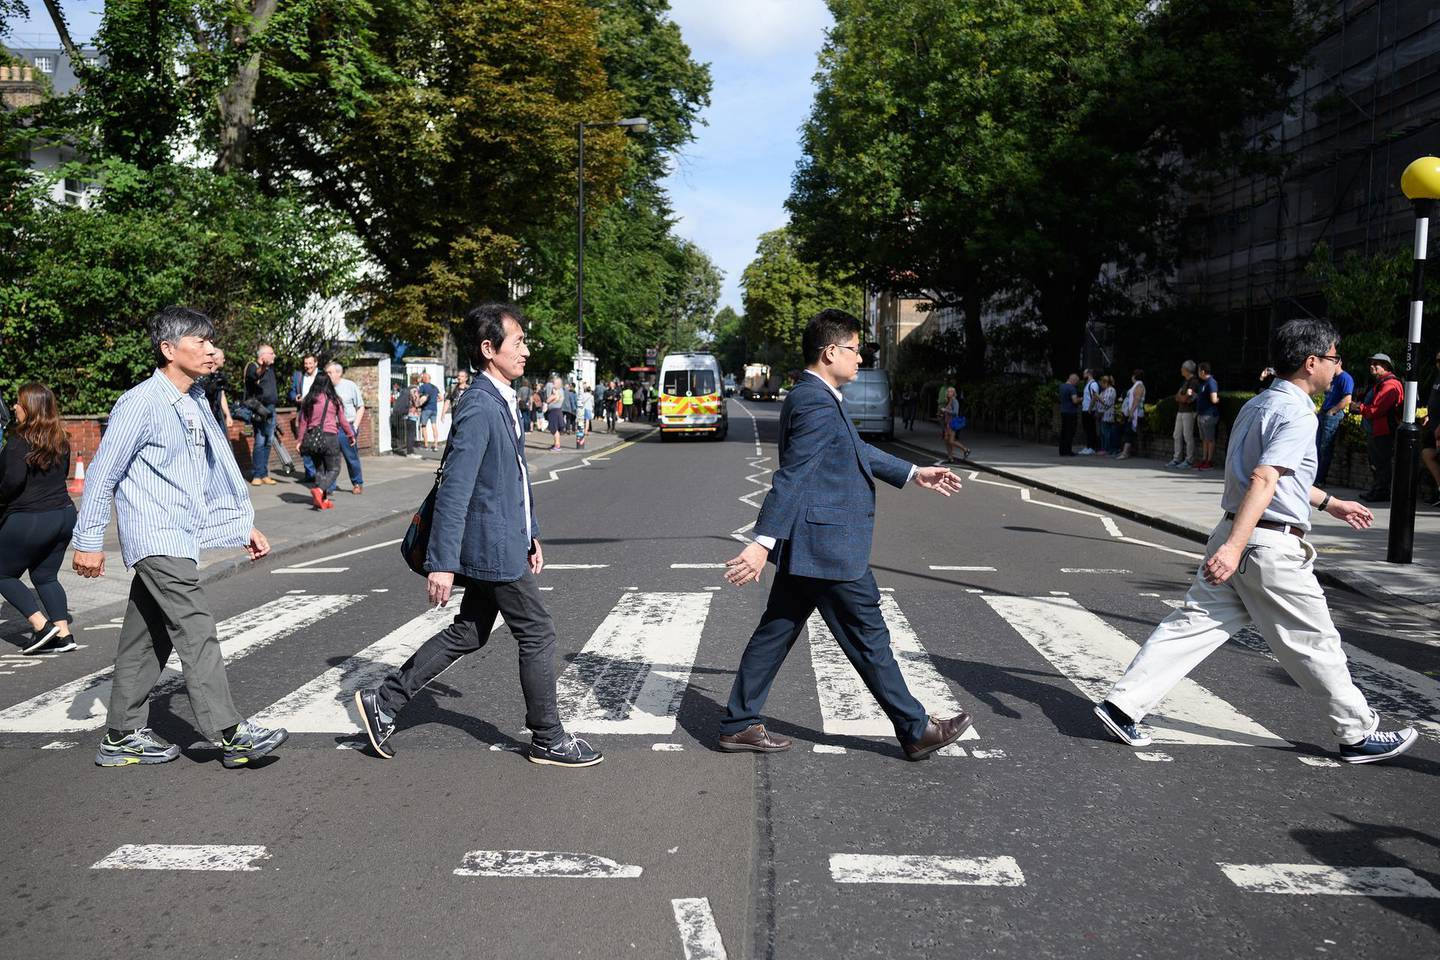 """LONDON, ENGLAND - AUGUST 08: Members of the public recreate the iconic album cover for the Beatles album """"Abbey Road"""" on the same pedestrian crossing, fifty years since it was taken, on August 08, 2019 in London, England. The zebra crossing is just outside the recording studios and has become a popular location for music fans visiting London.  (Photo by Leon Neal/Getty Images)"""